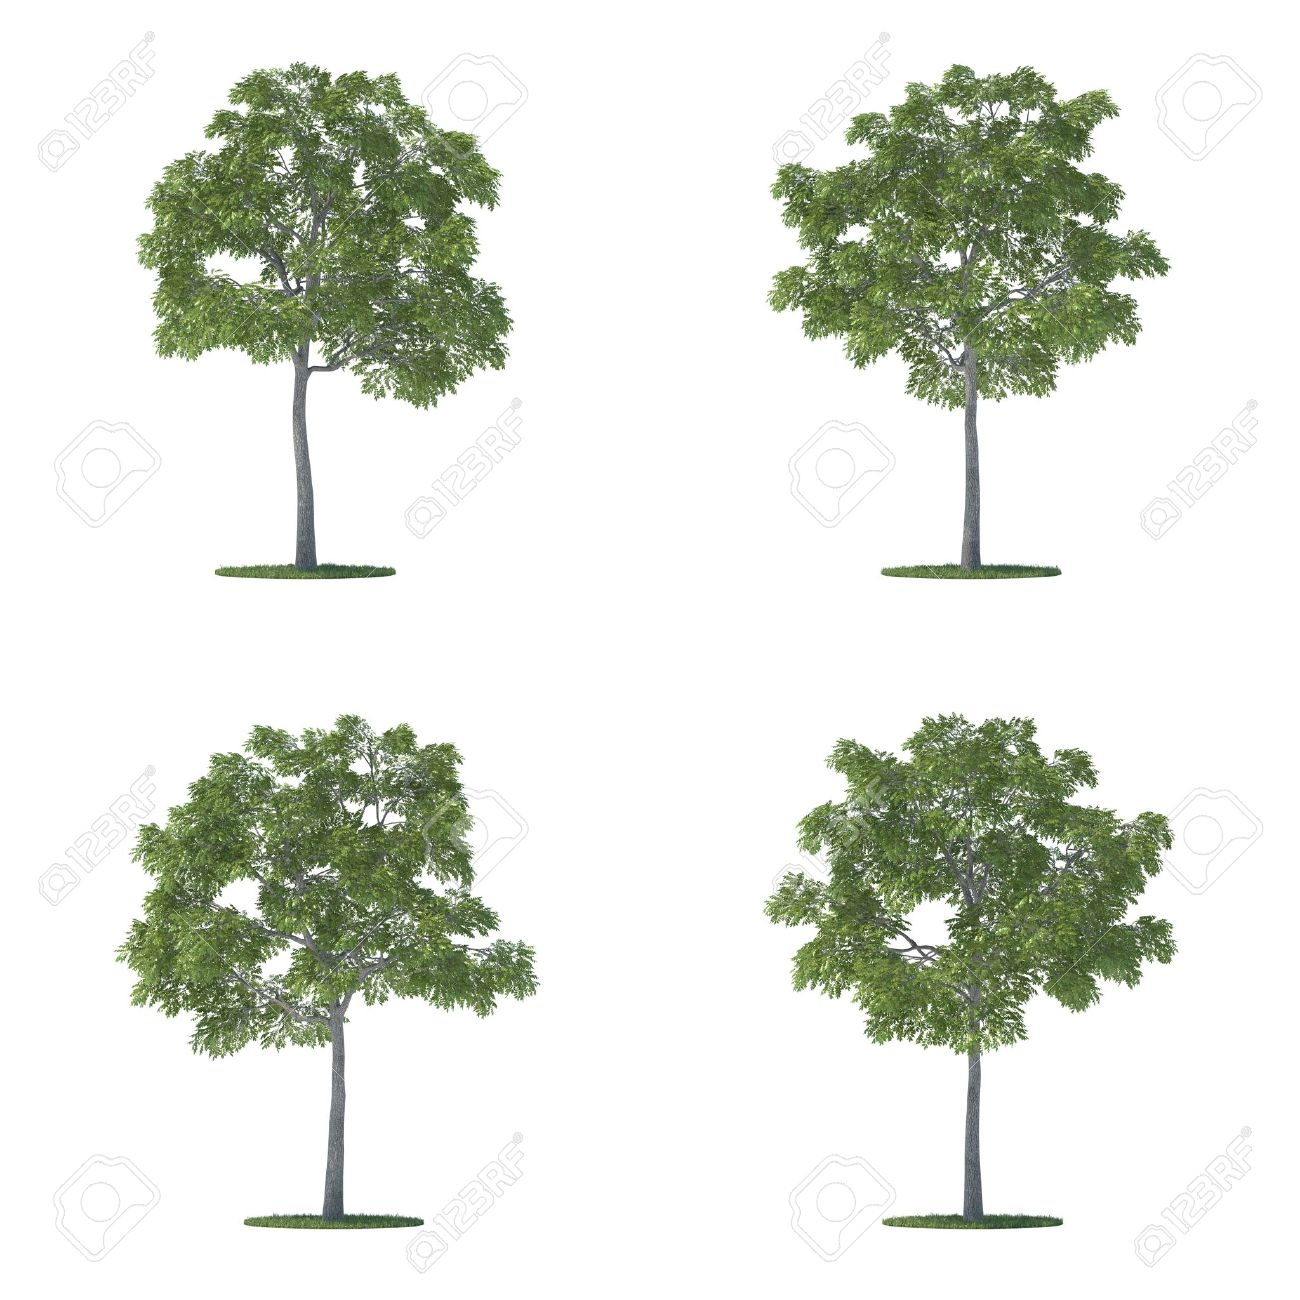 Juglans Nigra Trees Collection Isolated On White Stock Photo.